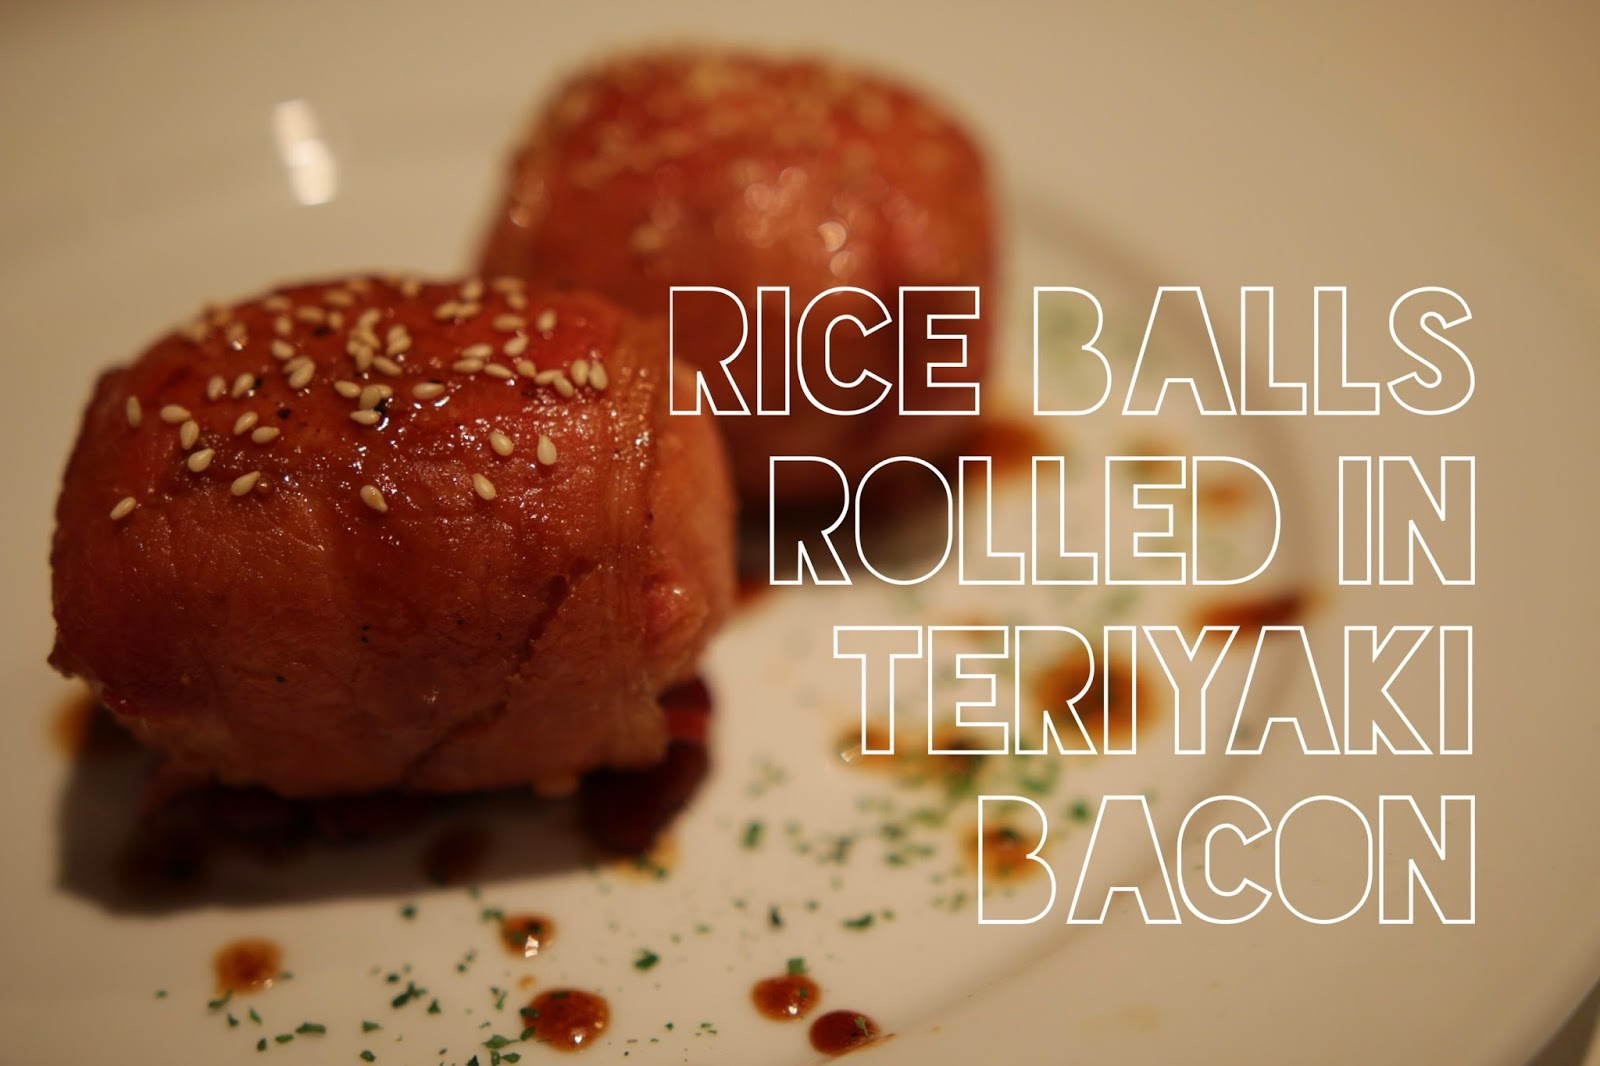 Rice balls rolled in teriyaki bacon